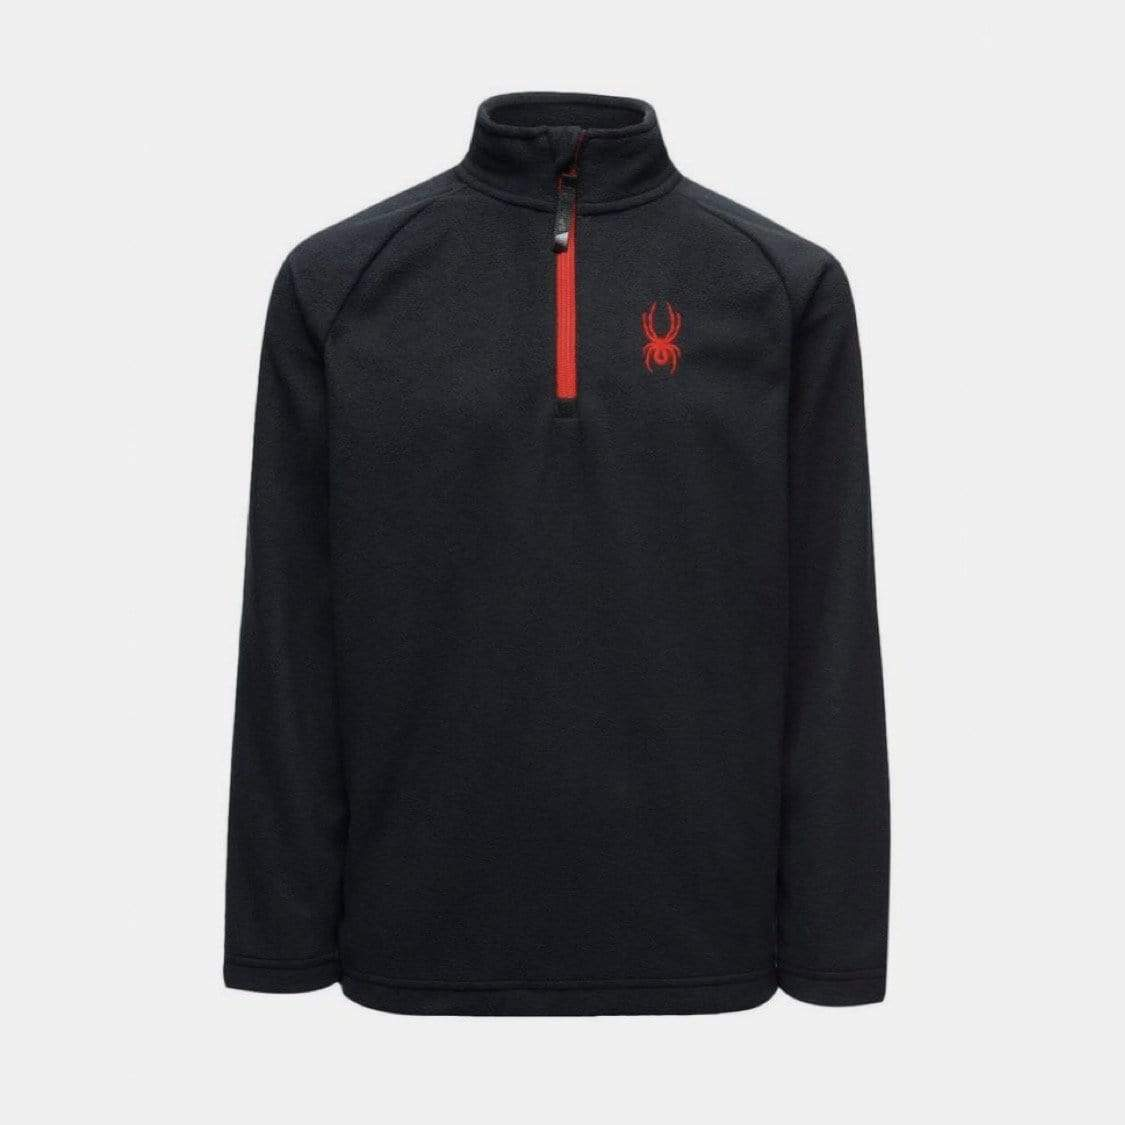 Spyder - Speed Fleece Black Zip T-Neck Sweatshirt Spyder S